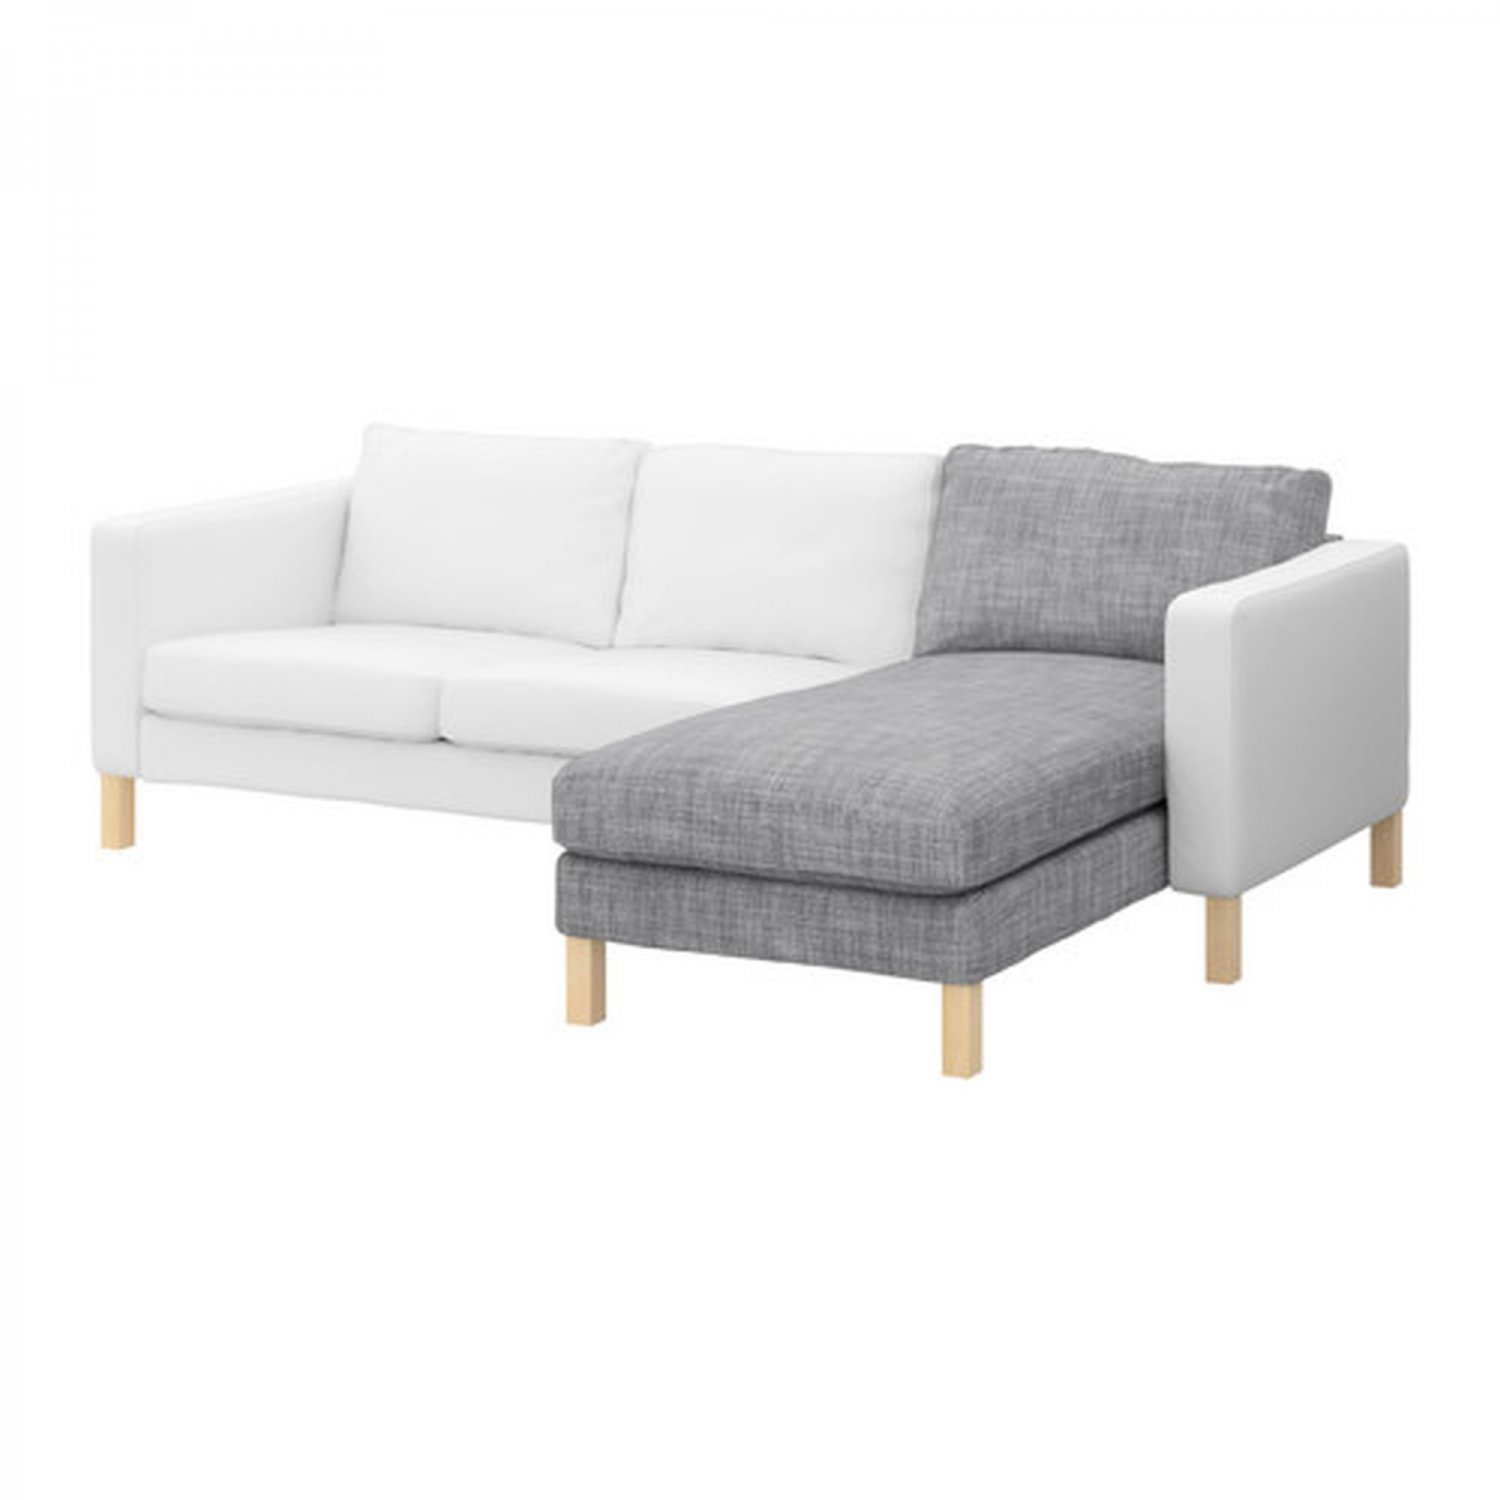 Ikea Karlstad Add On Chaise Longue Slipcover Lounge Cover